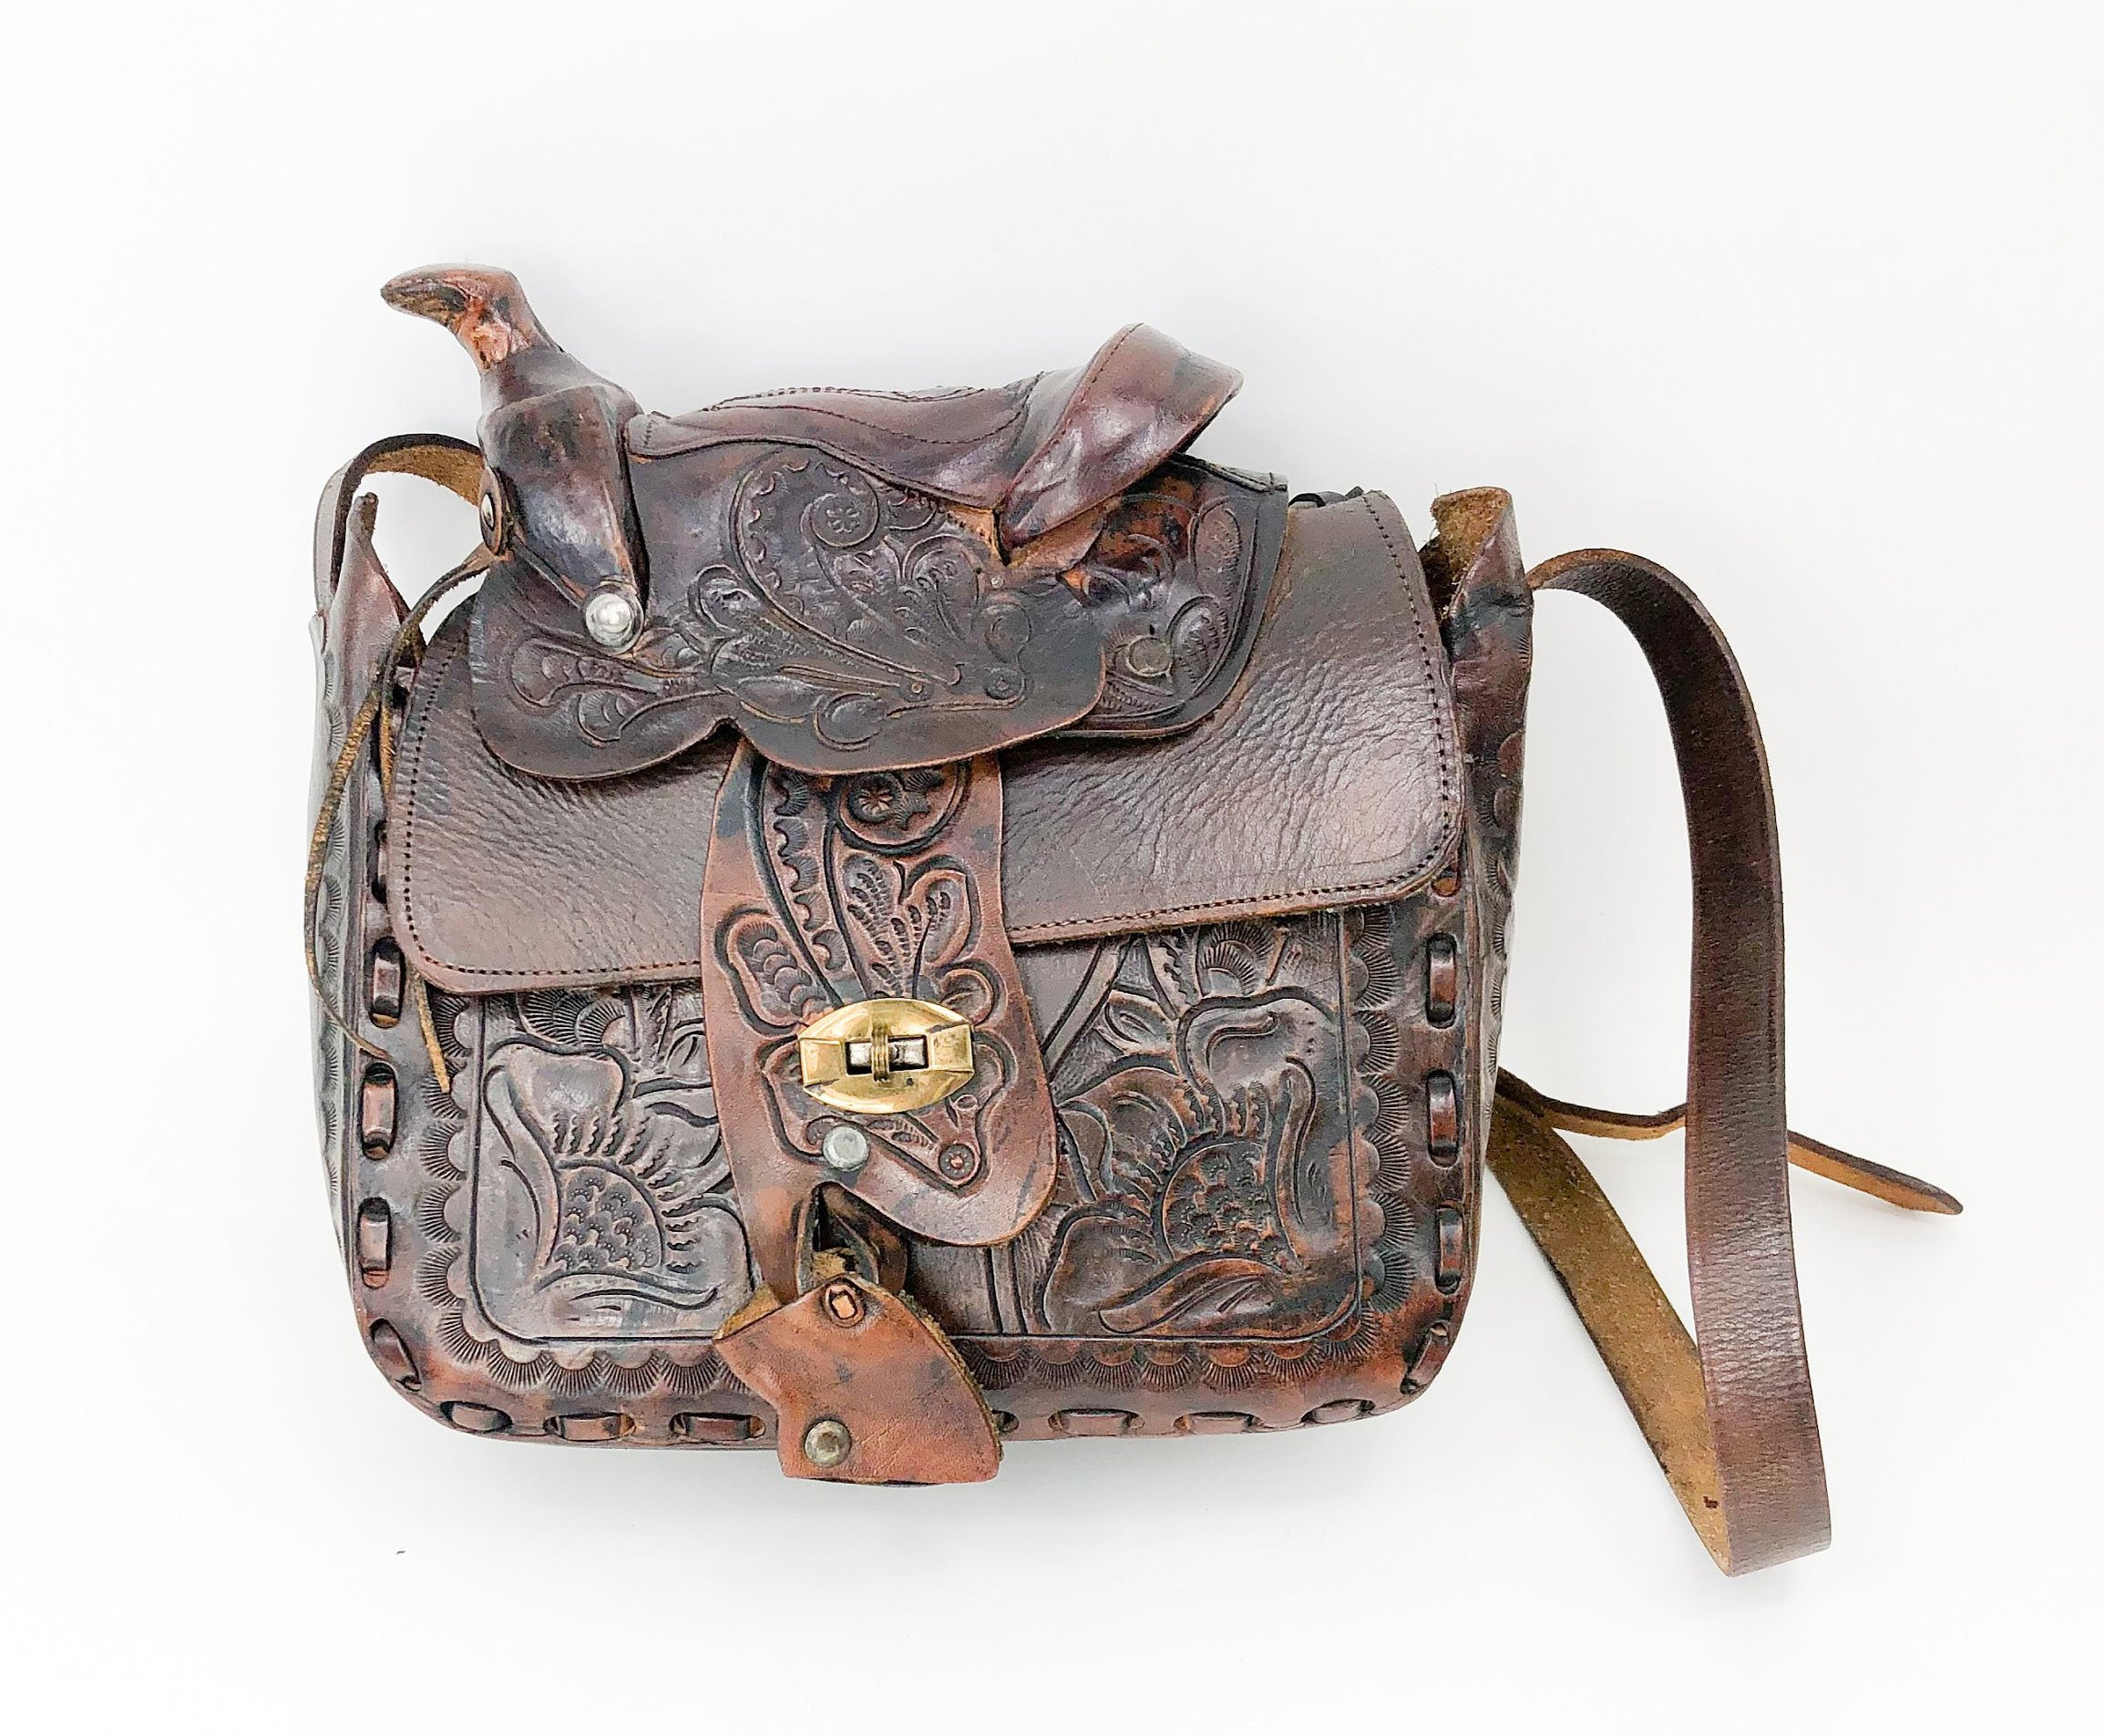 Tooled leather bags  were even made in the shape of saddles!